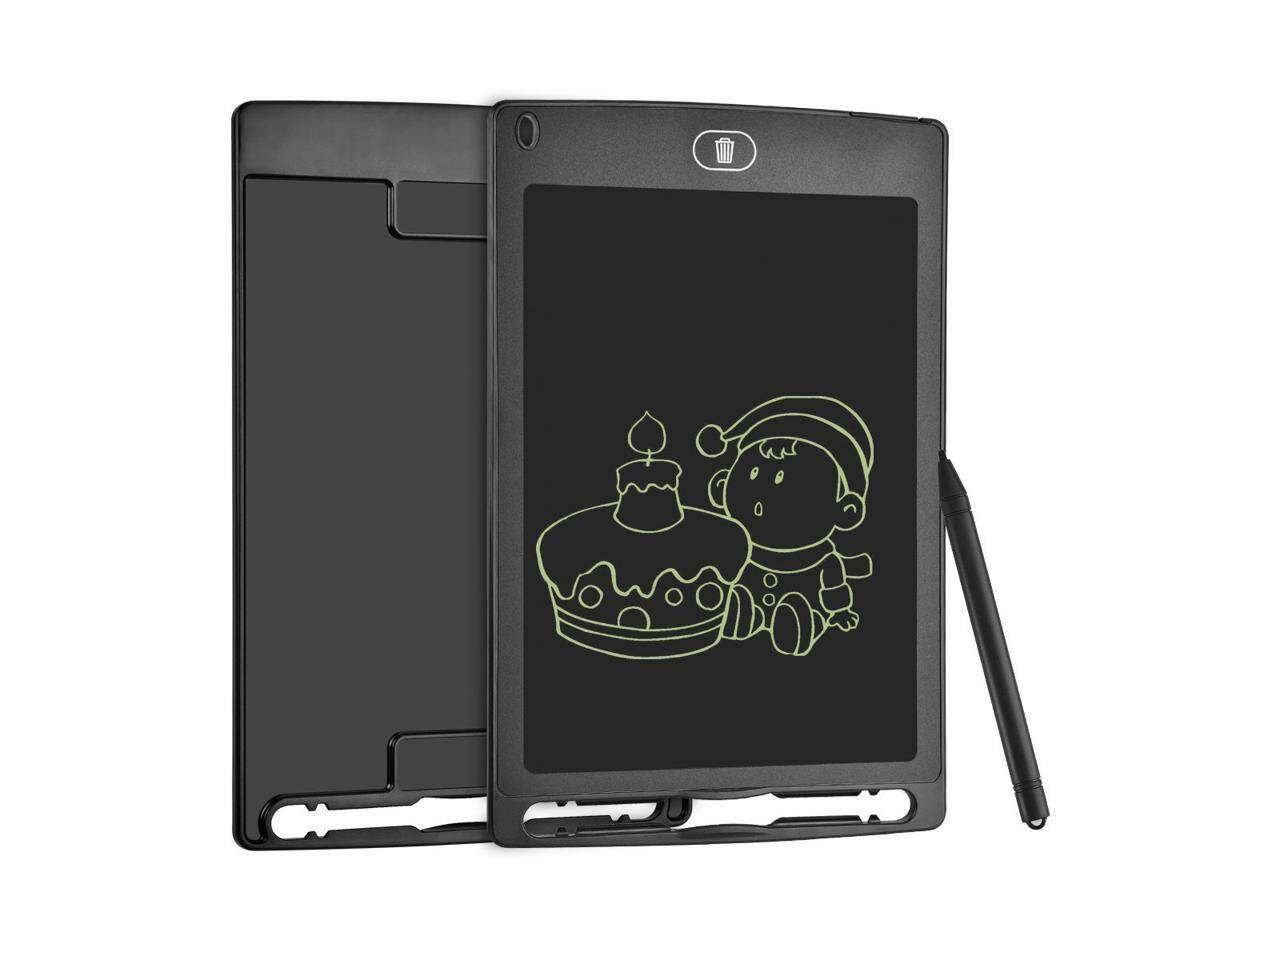 8.5 Inch Screen Portable LCD Writing Tablet, Lock Electronic Drawing Board,Handwriting Notepad with stylus for Kids and Adults at Home,School and Work Office-Black - intl